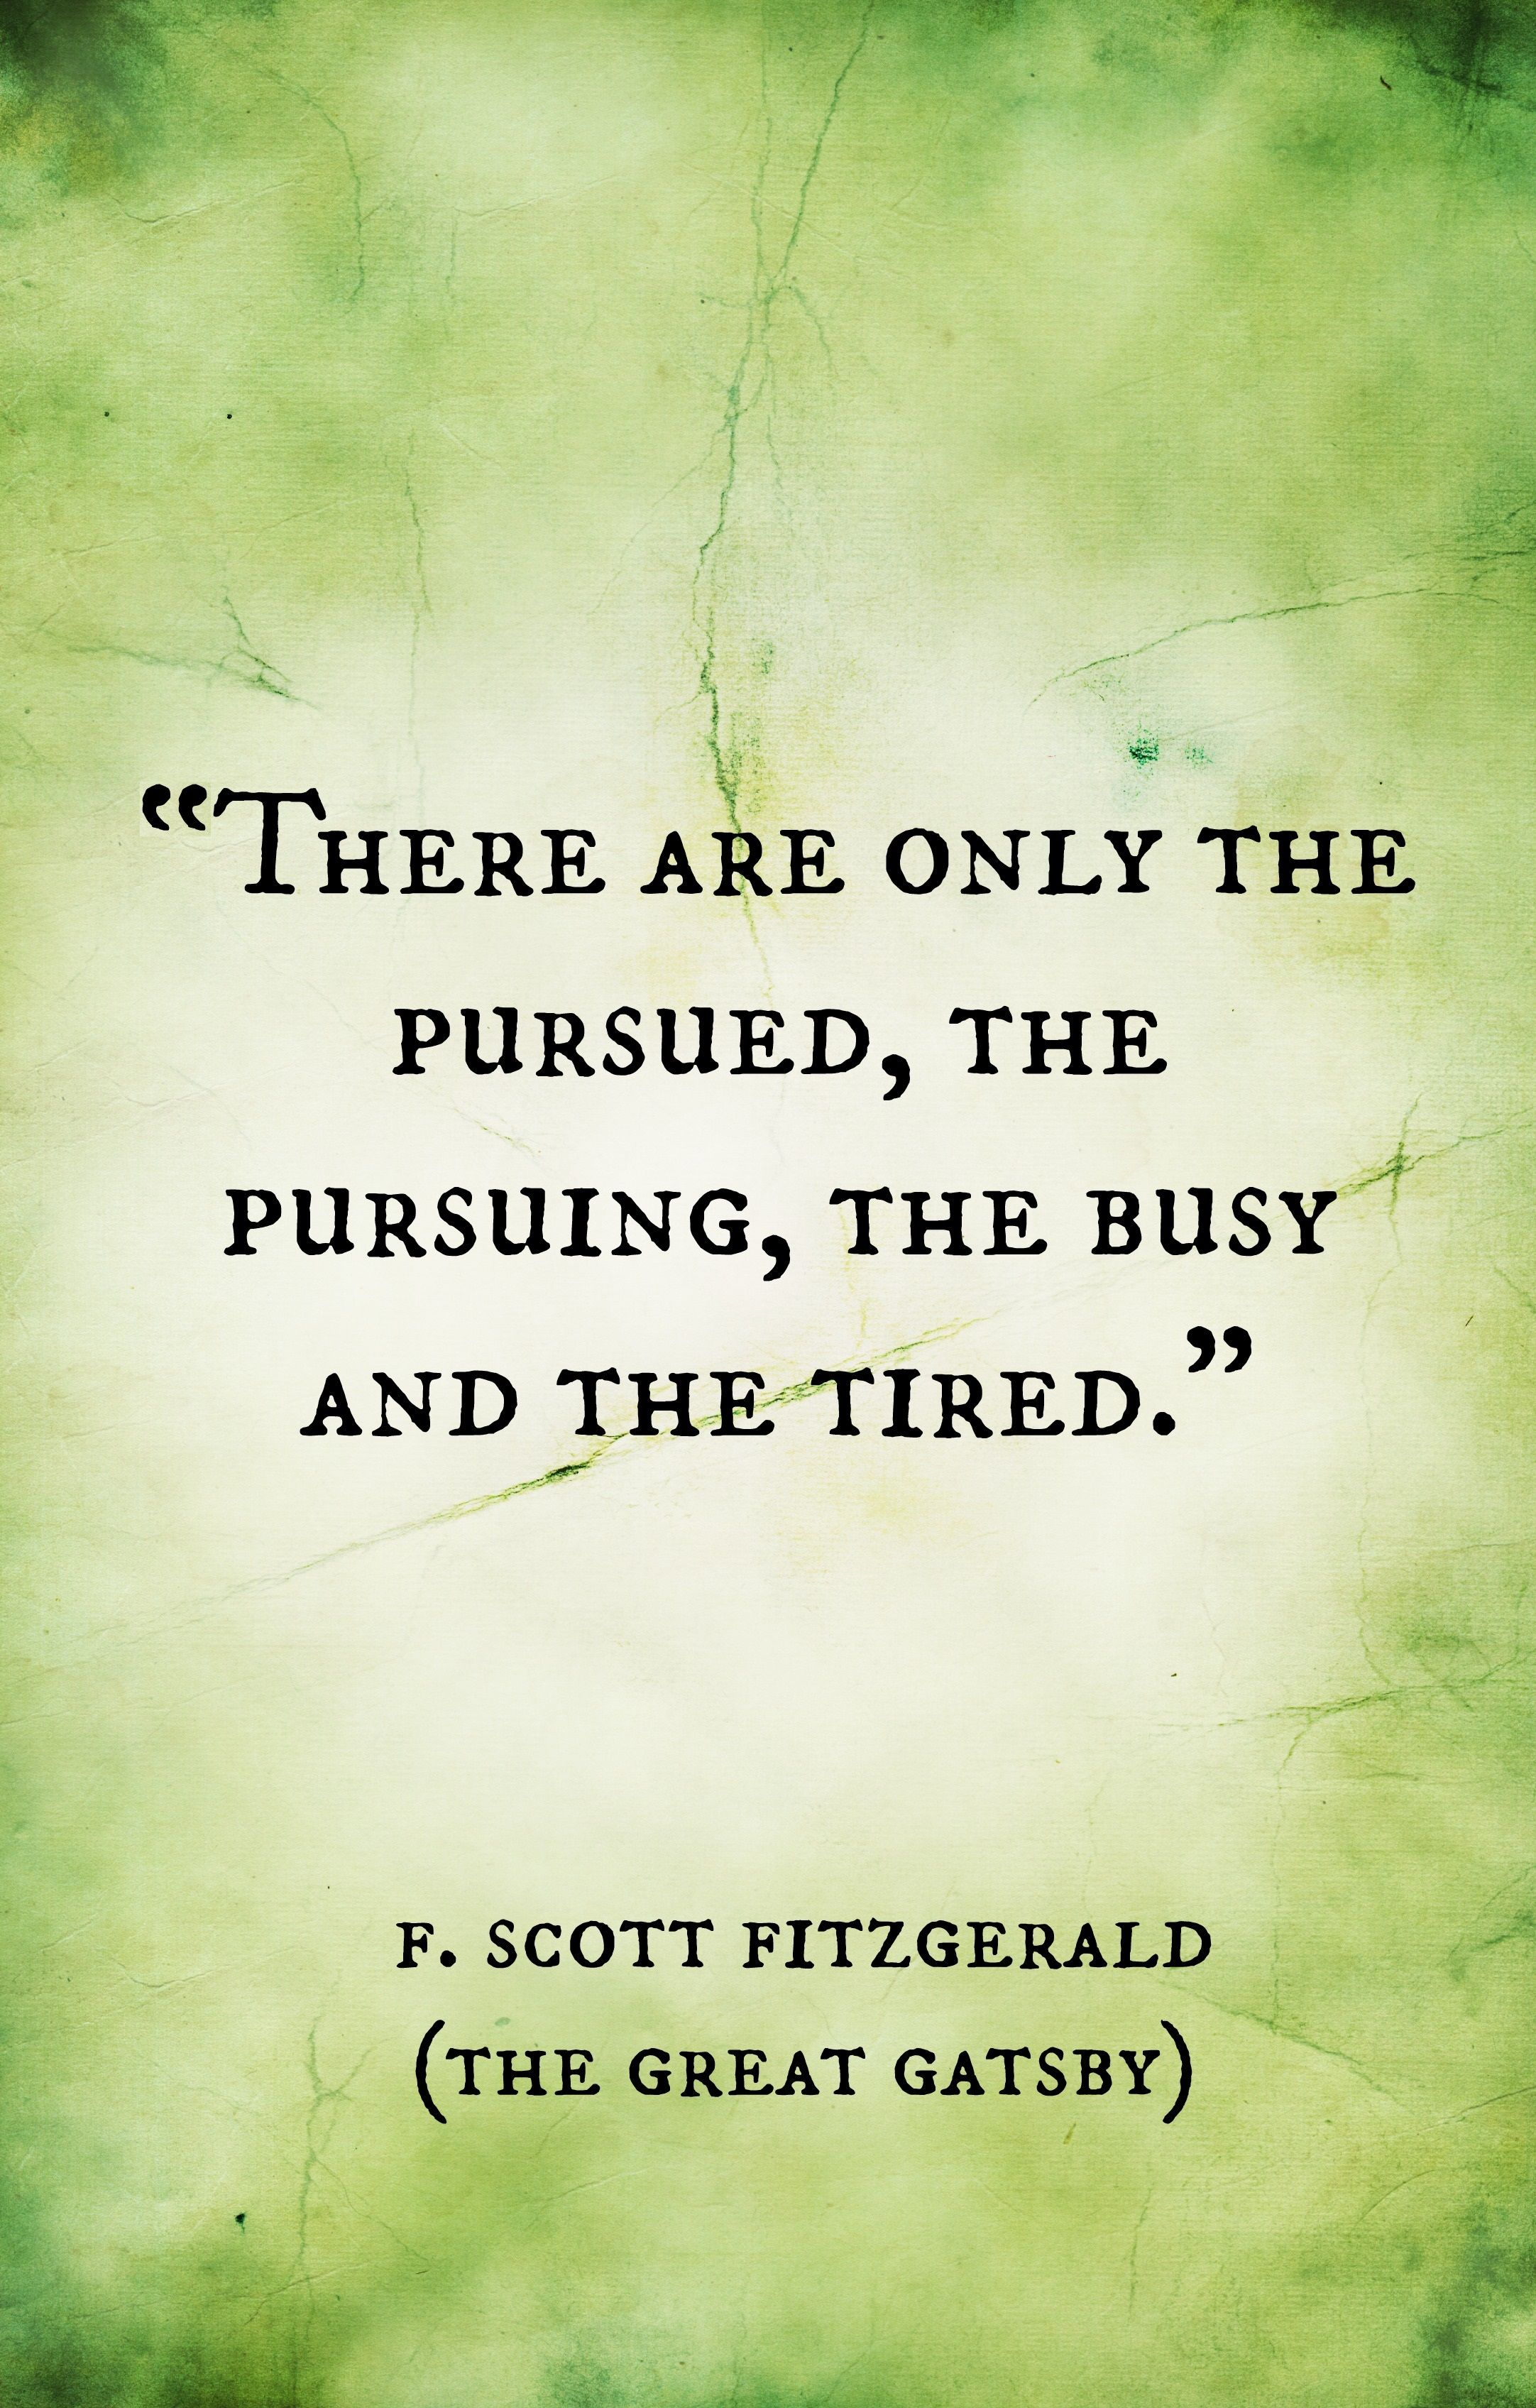 Quotes From The Great Gatsby The Great Gatsby Fscott Fitzgerald Quotes  Novel  Pinterest